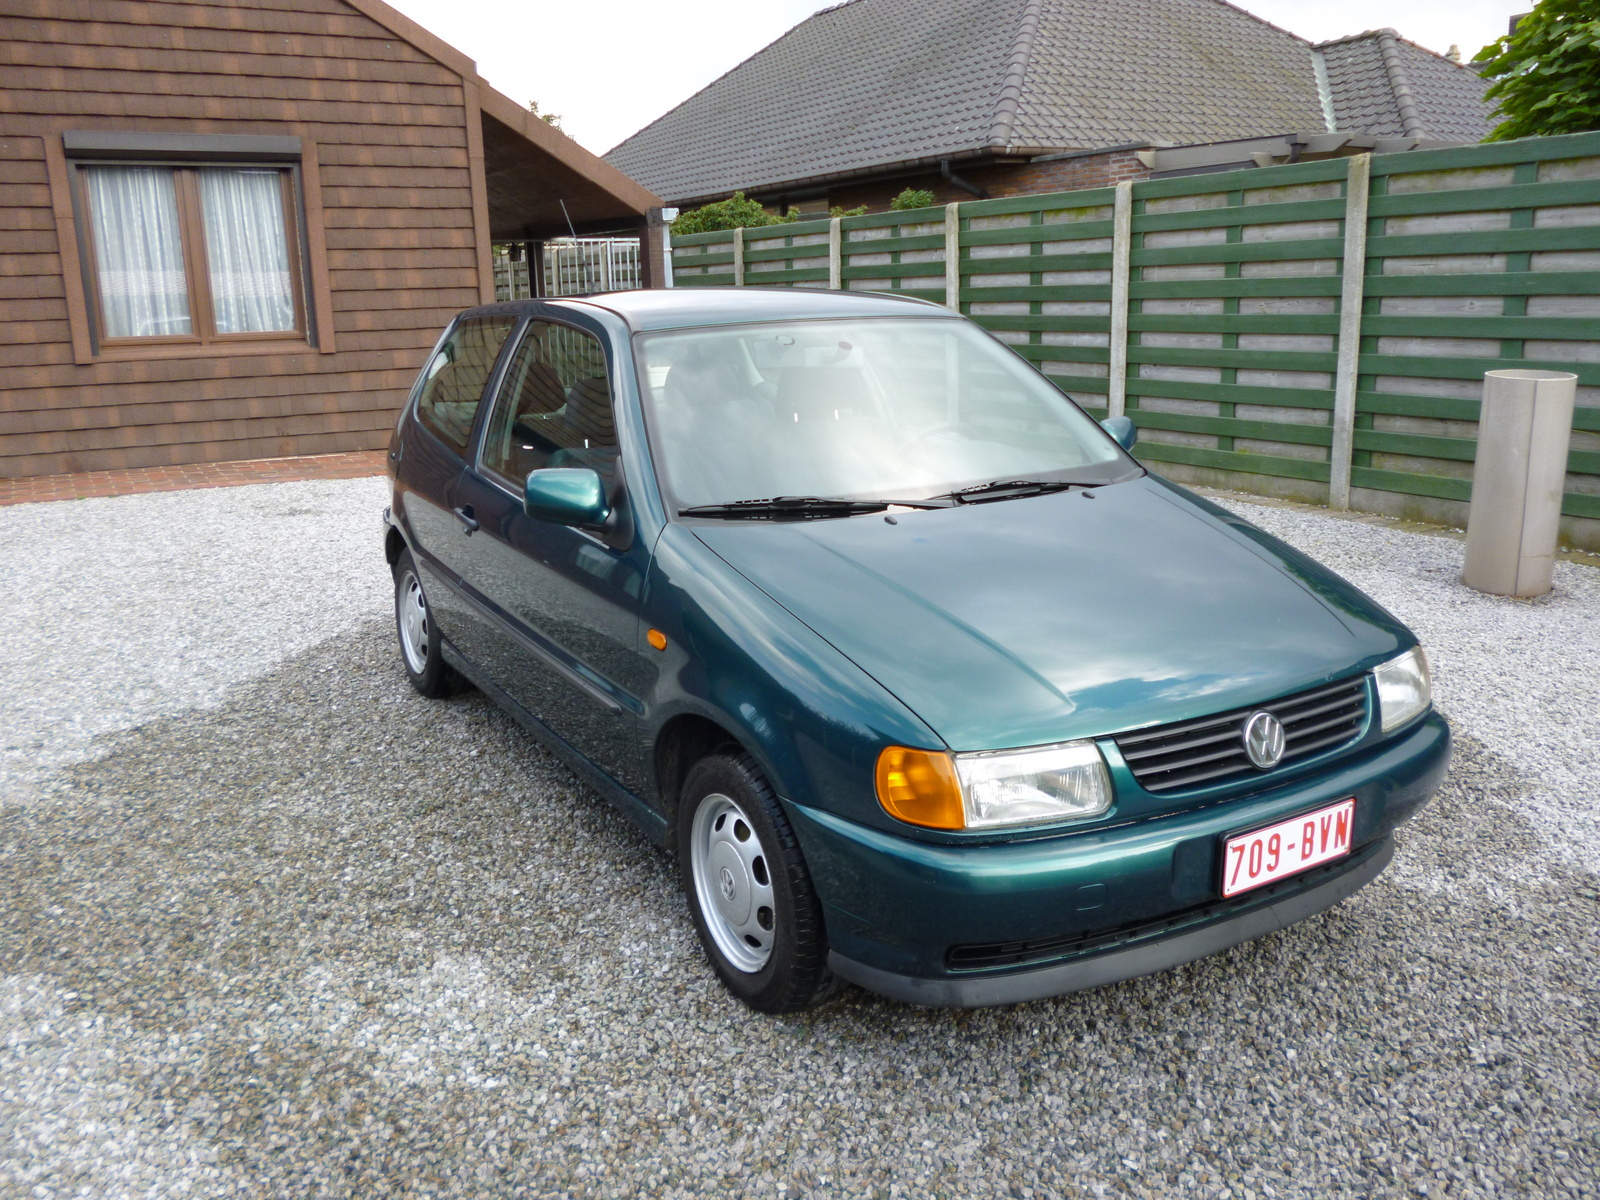 Volkswagen Polo 1.9 1996 photo - 8